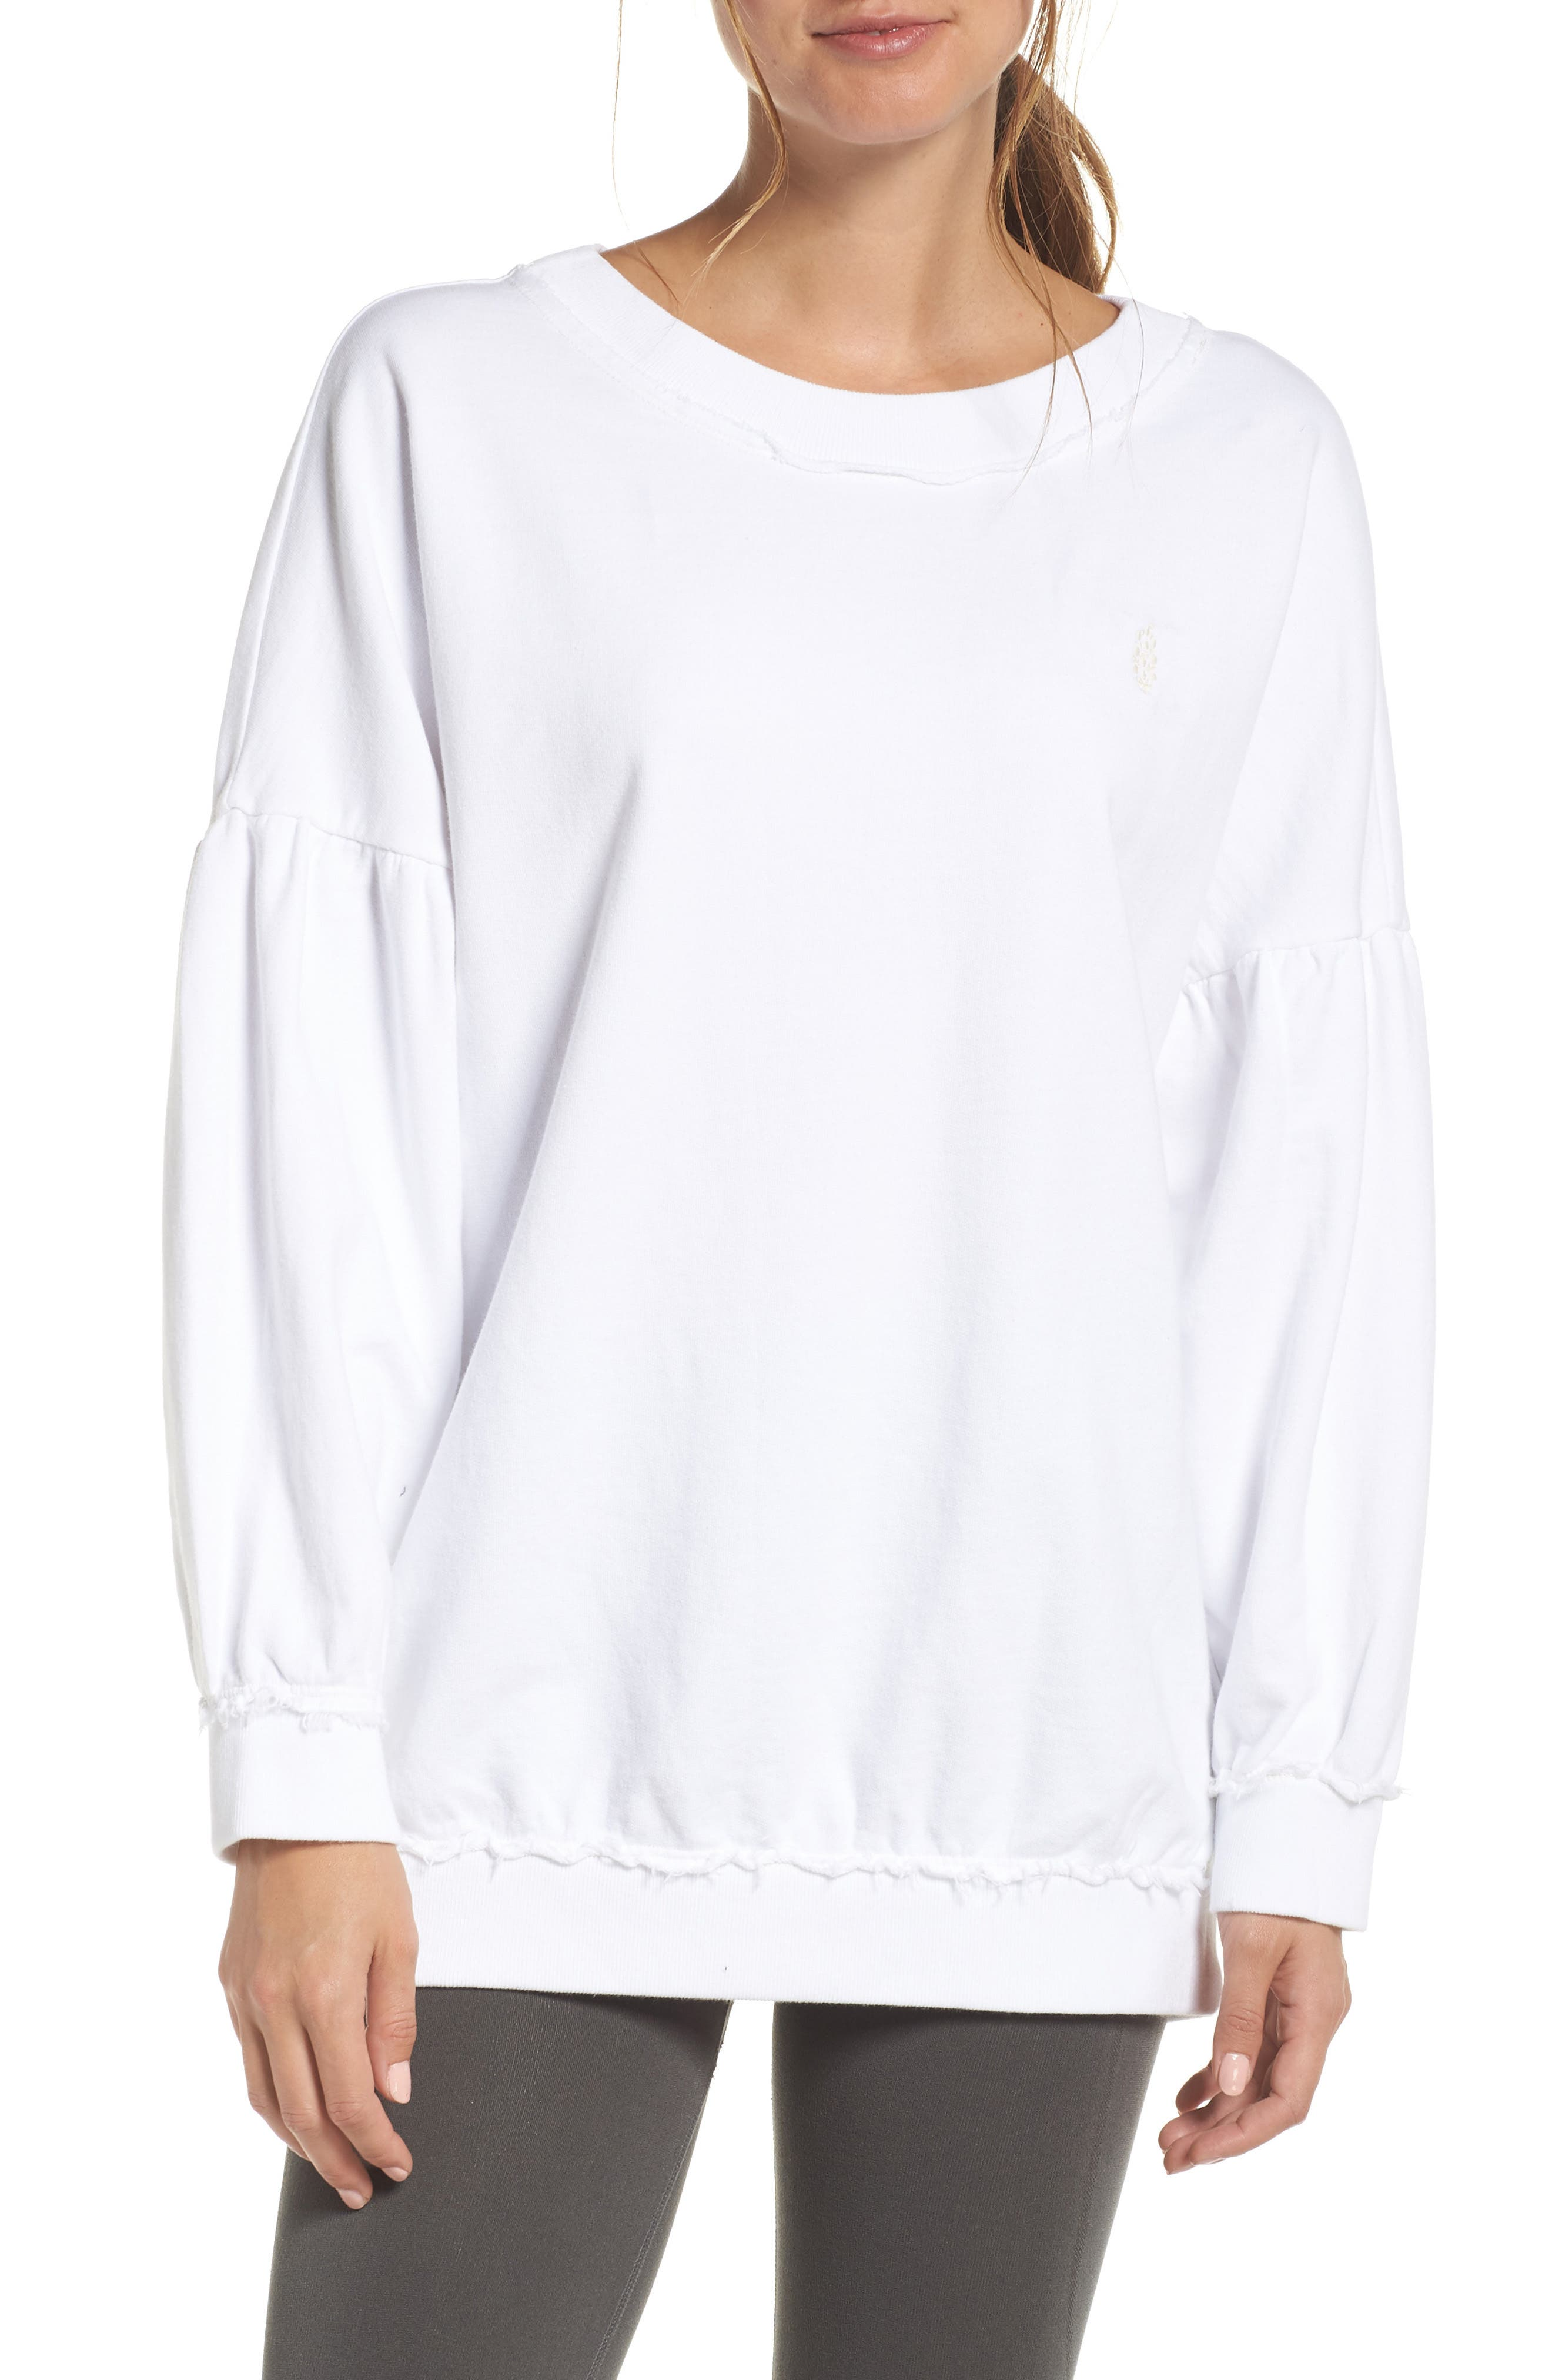 Make it Count Pullover,                         Main,                         color, WHITE